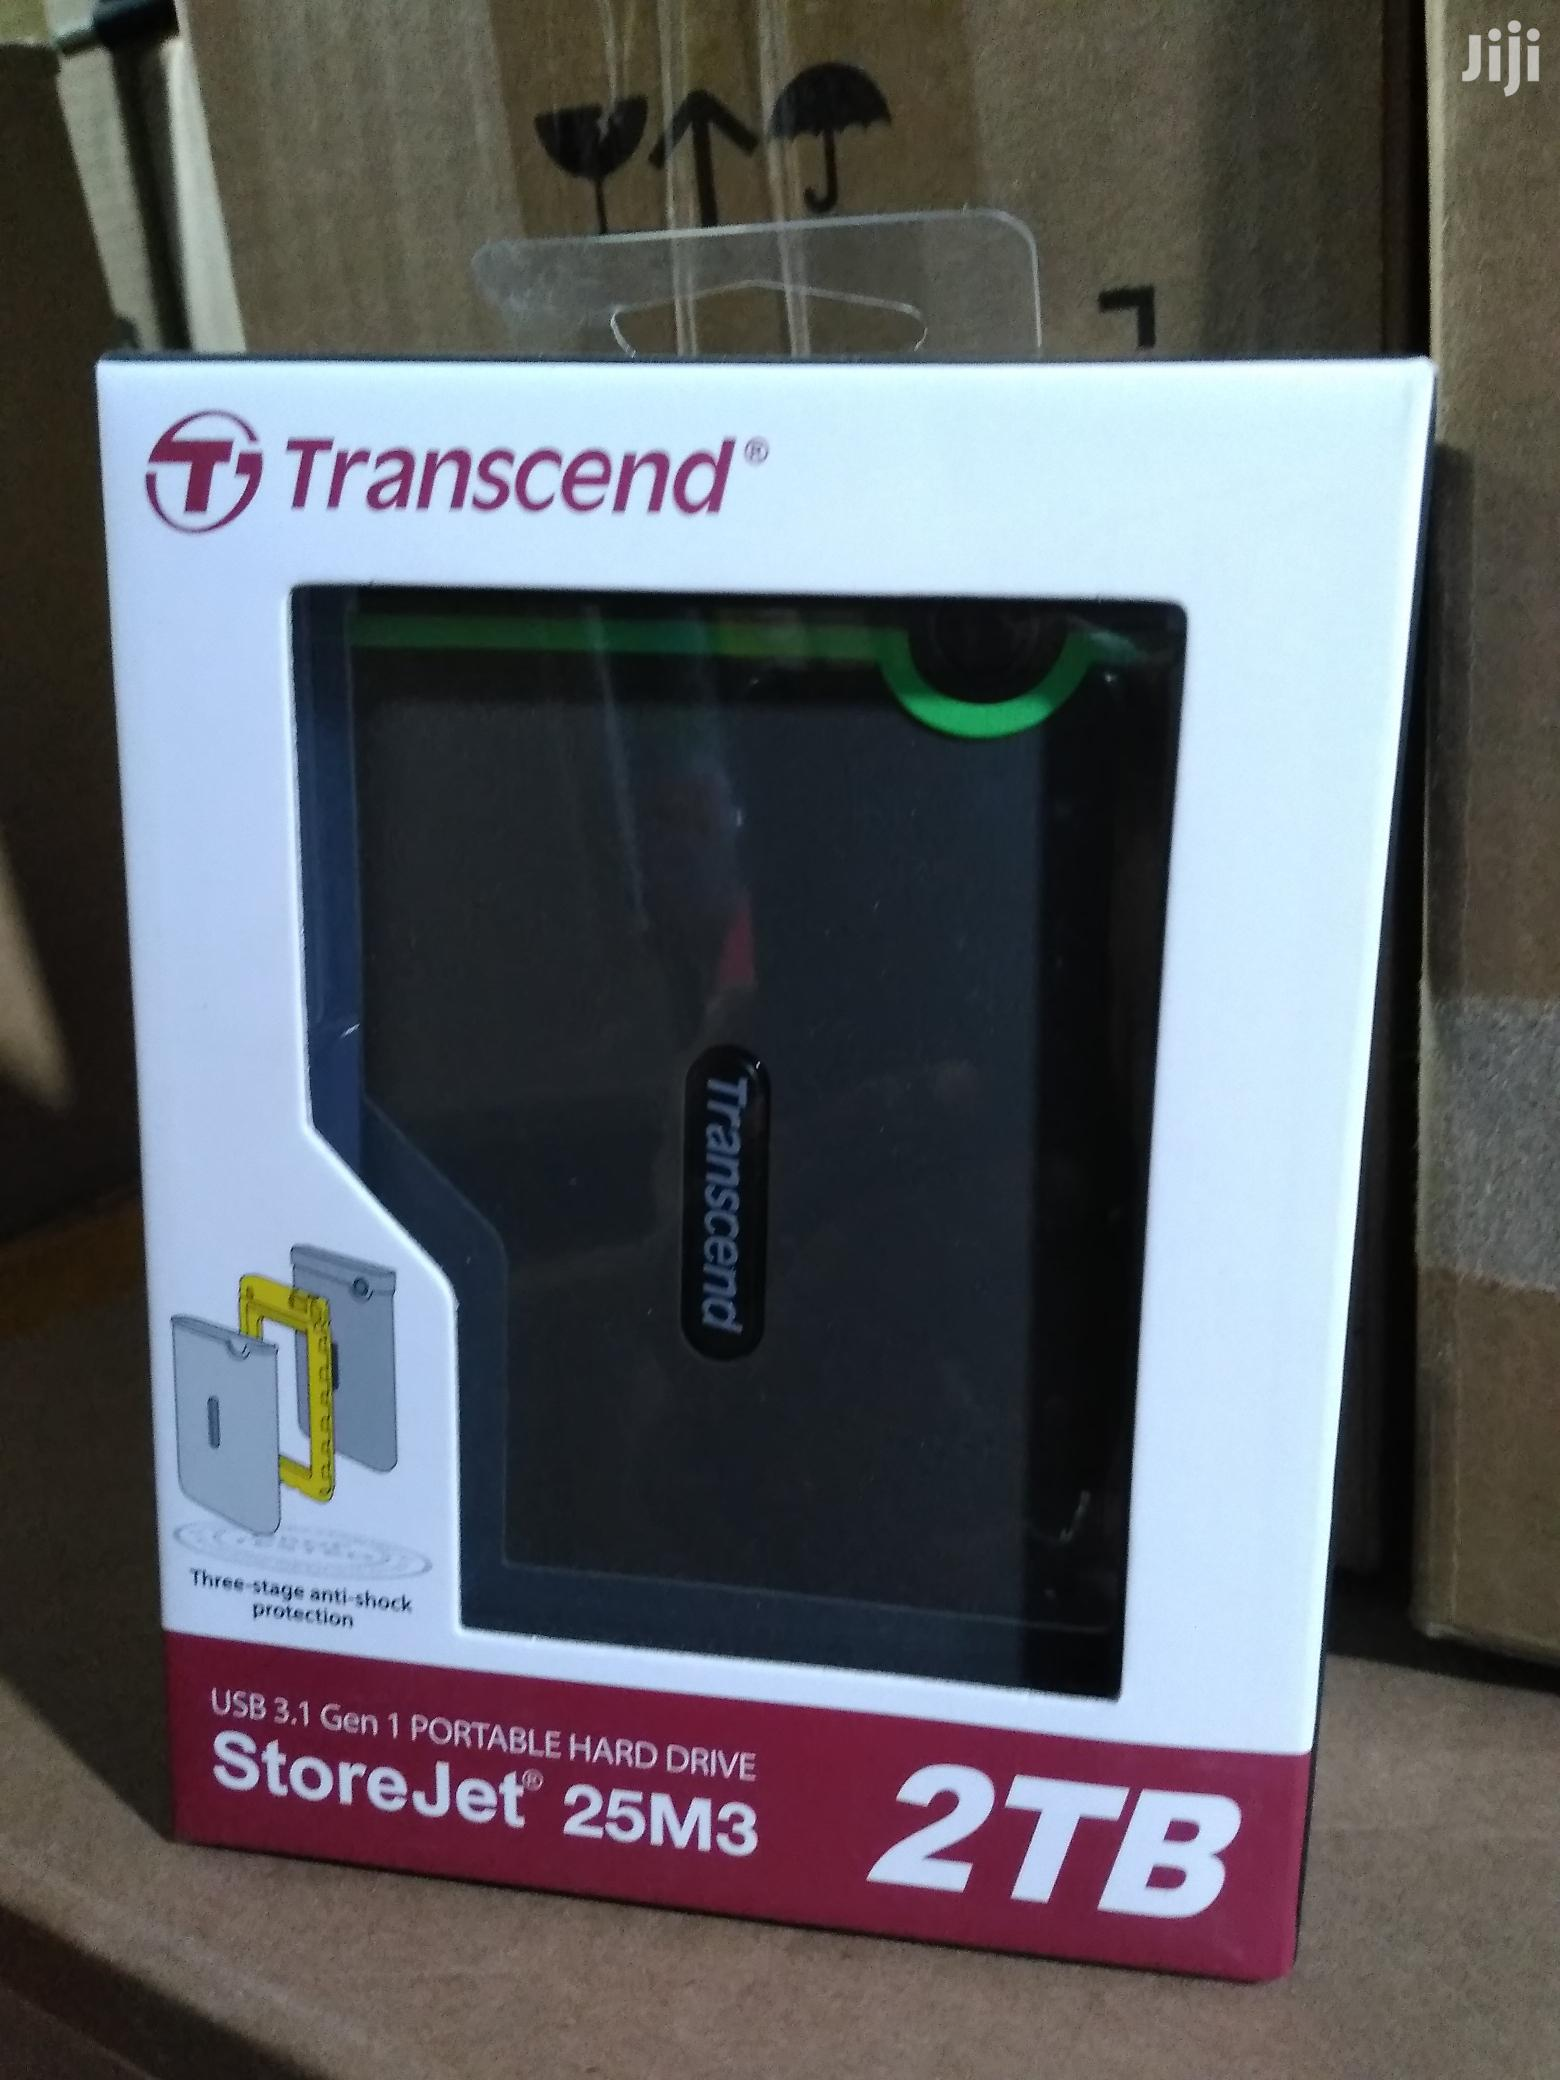 Trascend Usb 3.0 Portable Hard Drive 2TB | Computer Hardware for sale in Ikeja, Lagos State, Nigeria